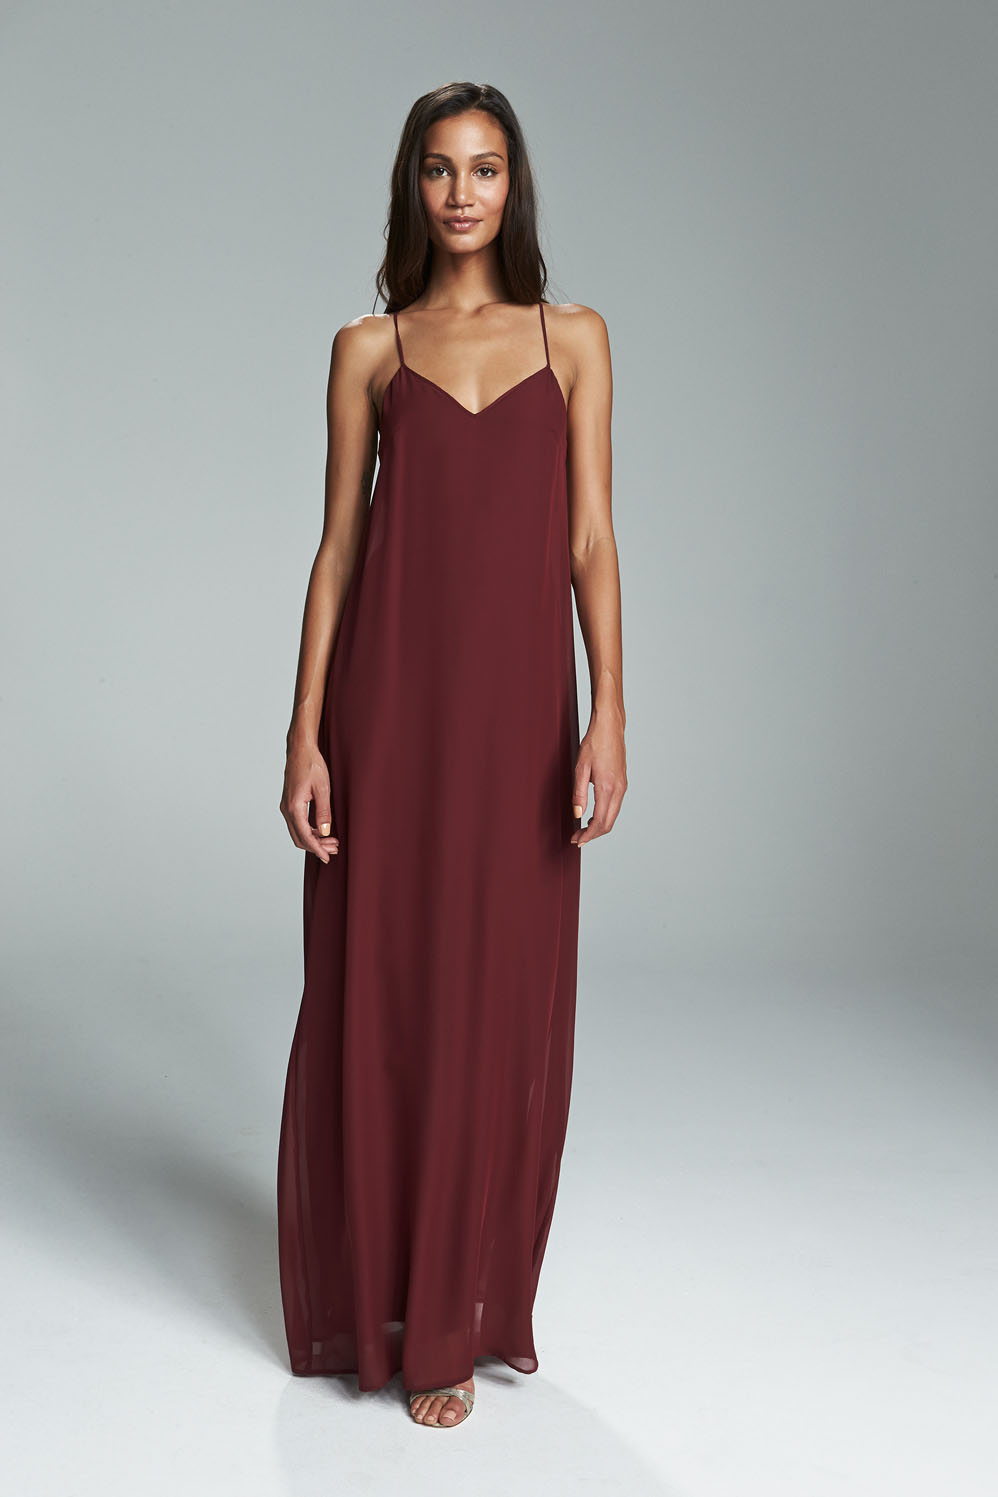 Long-flowy-bridesmaid-dress-nouvelle-amsale-bridesmaids-willa.jpg